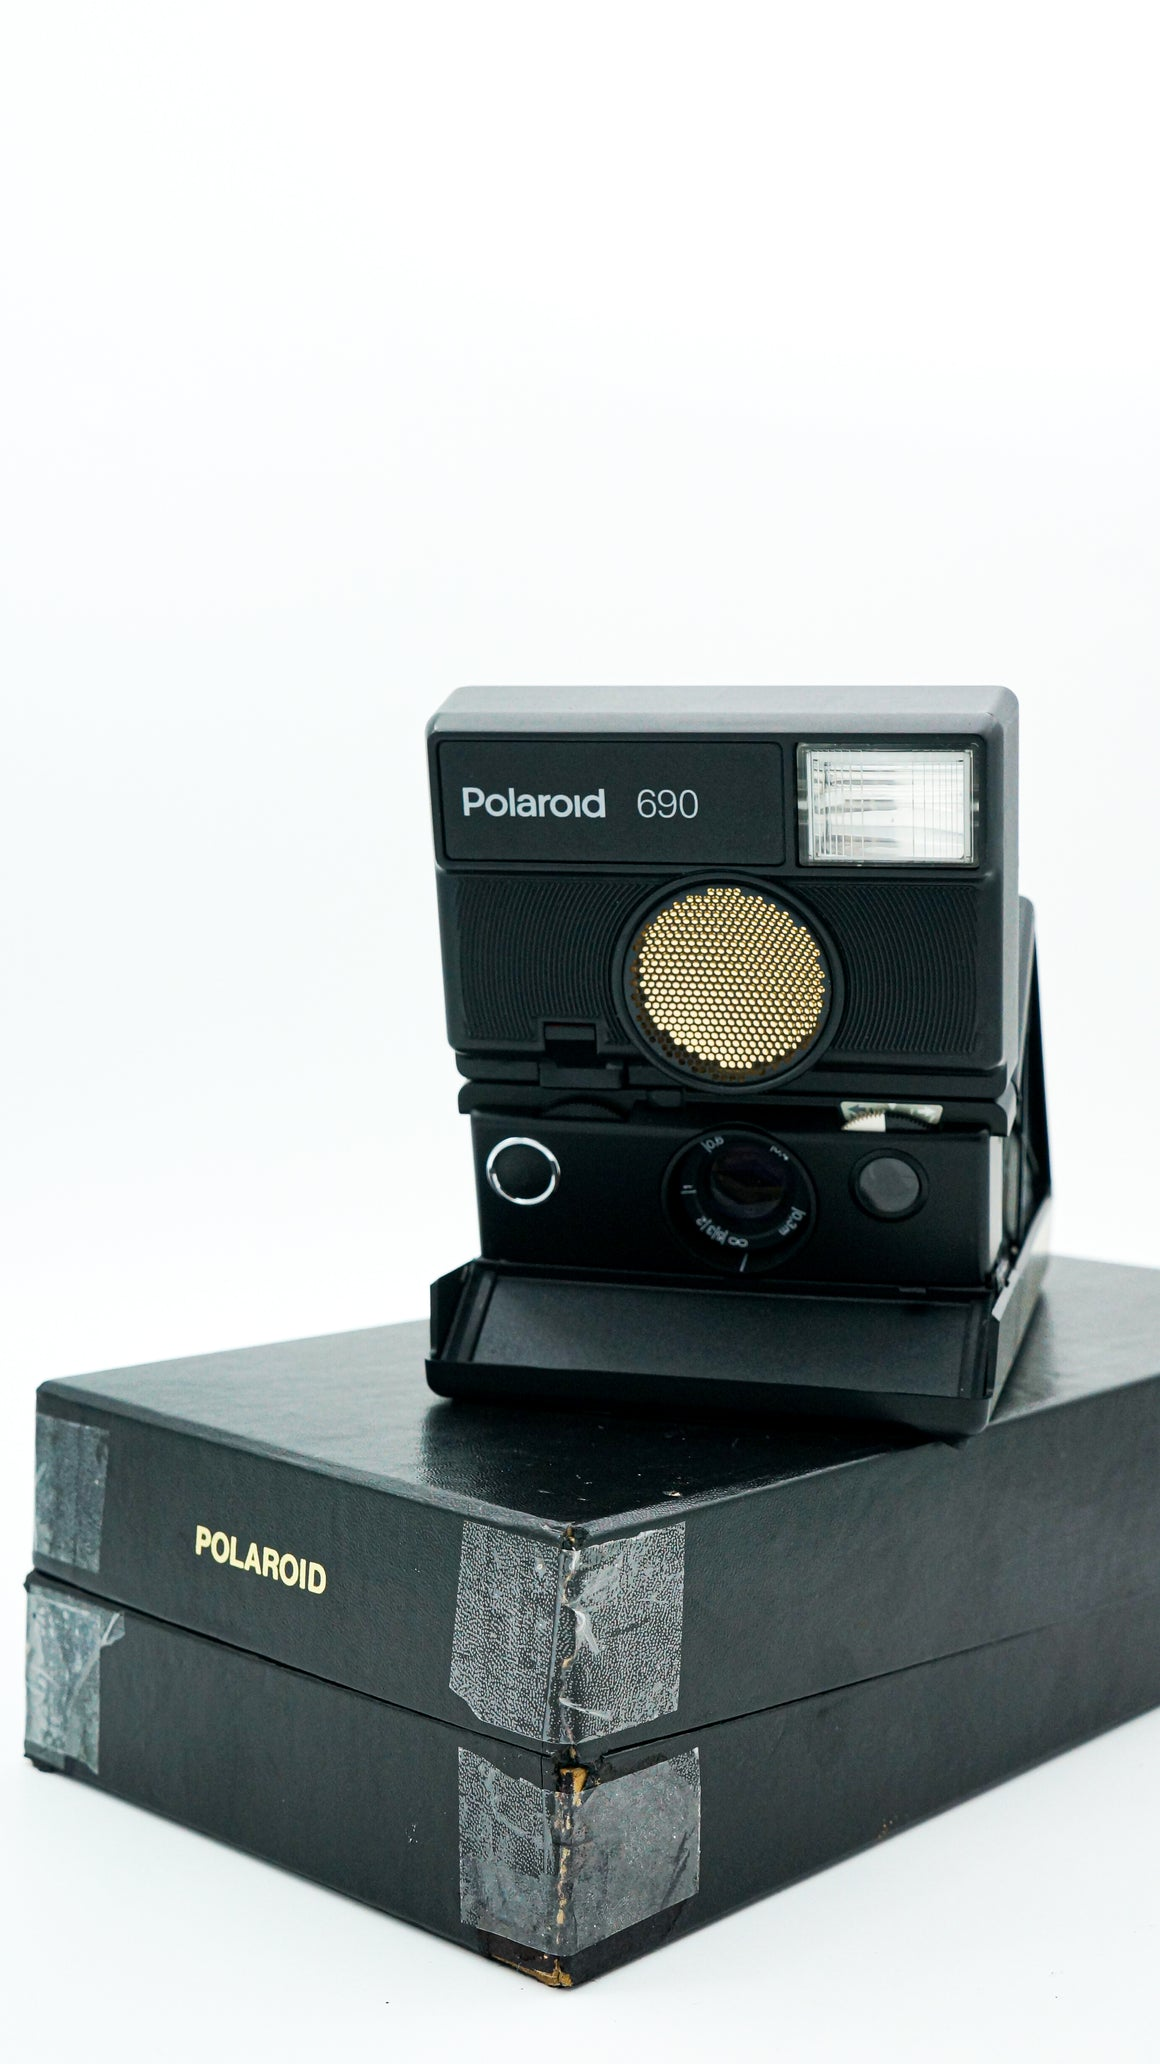 Polaroid SLR 680 Autofocus Instant Camera with Original box